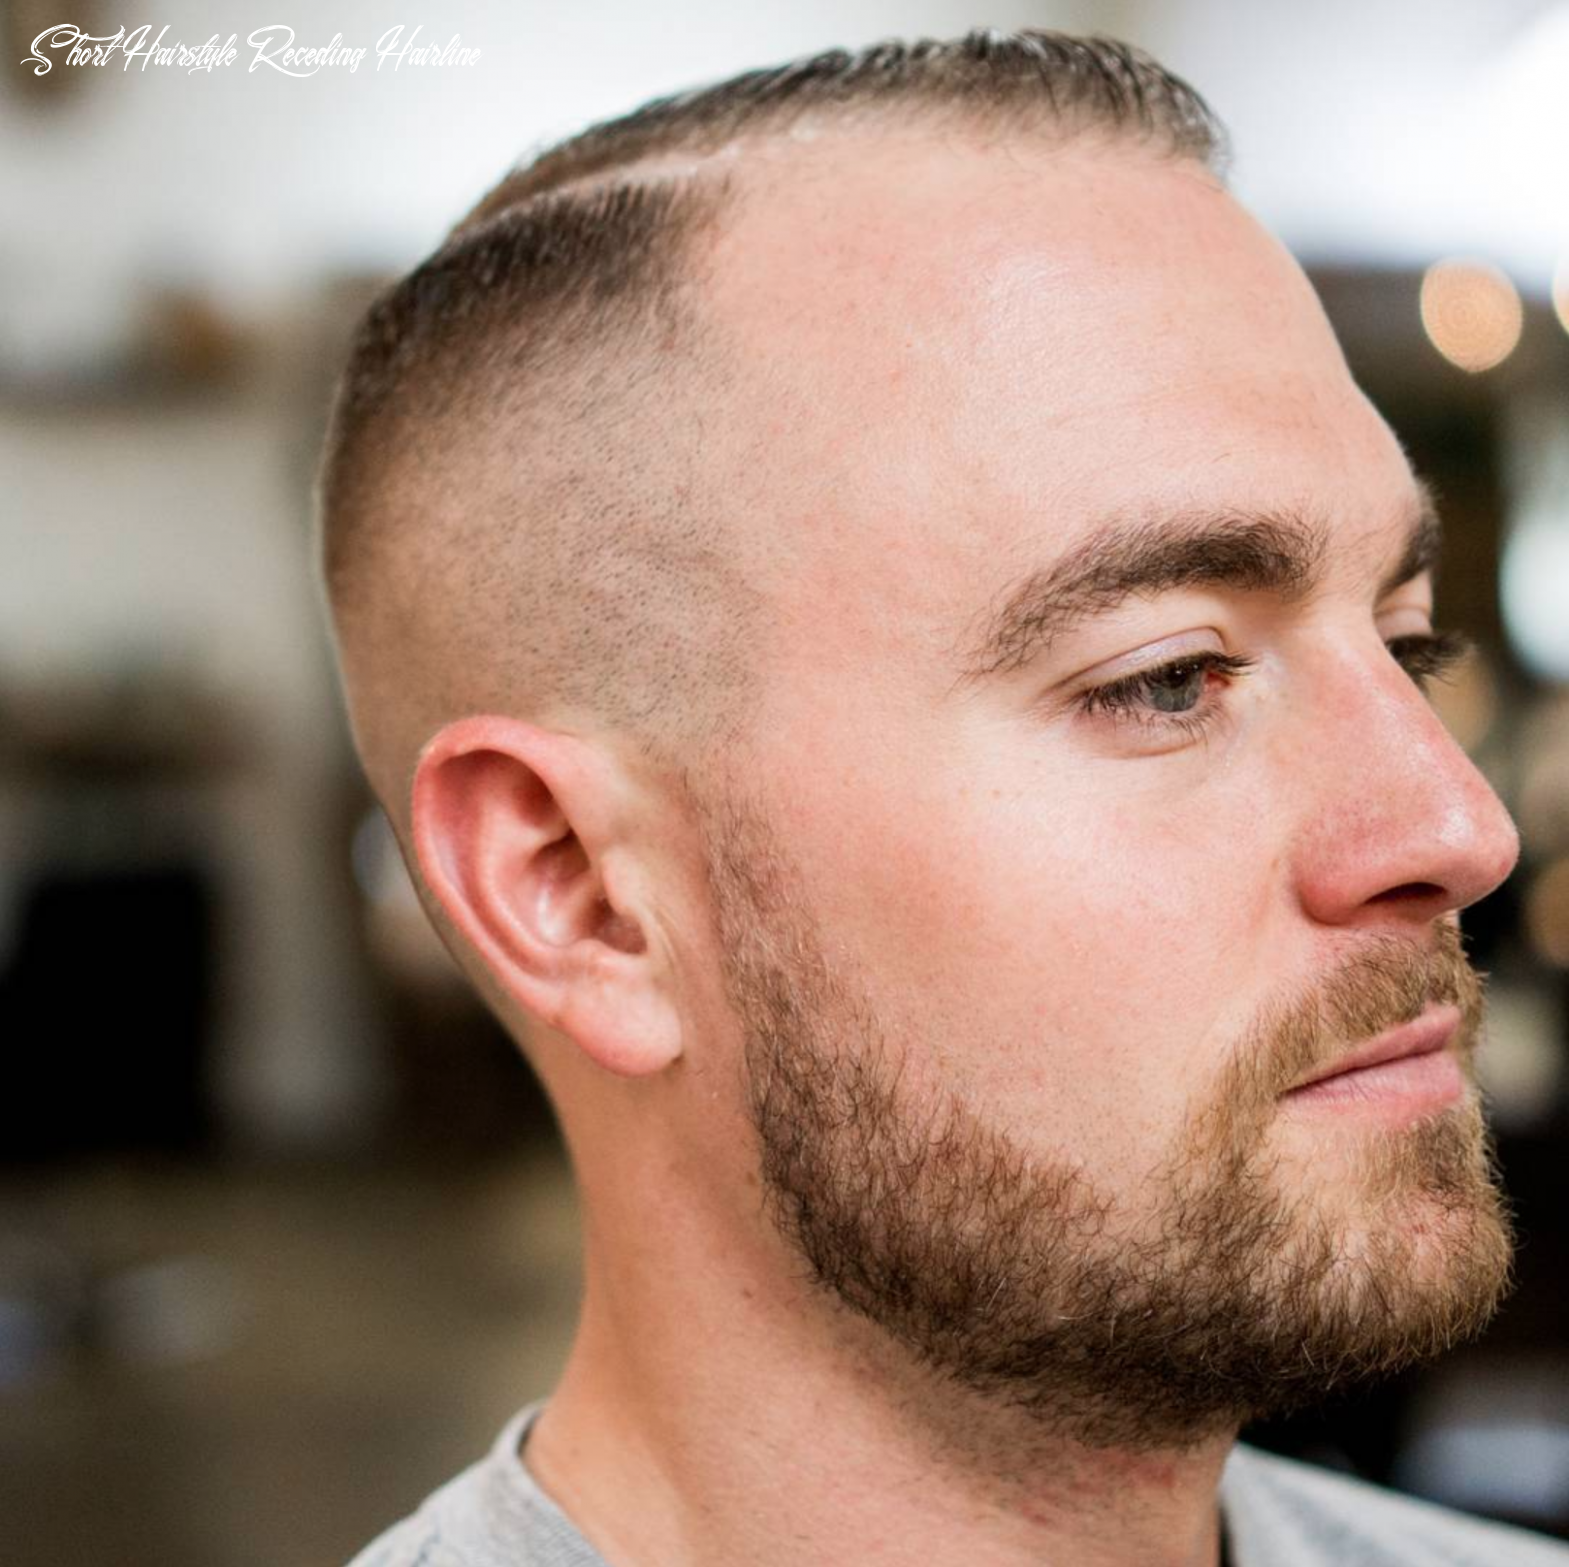 Haircuts for an early stage receding hairline fitted short hairstyle receding hairline